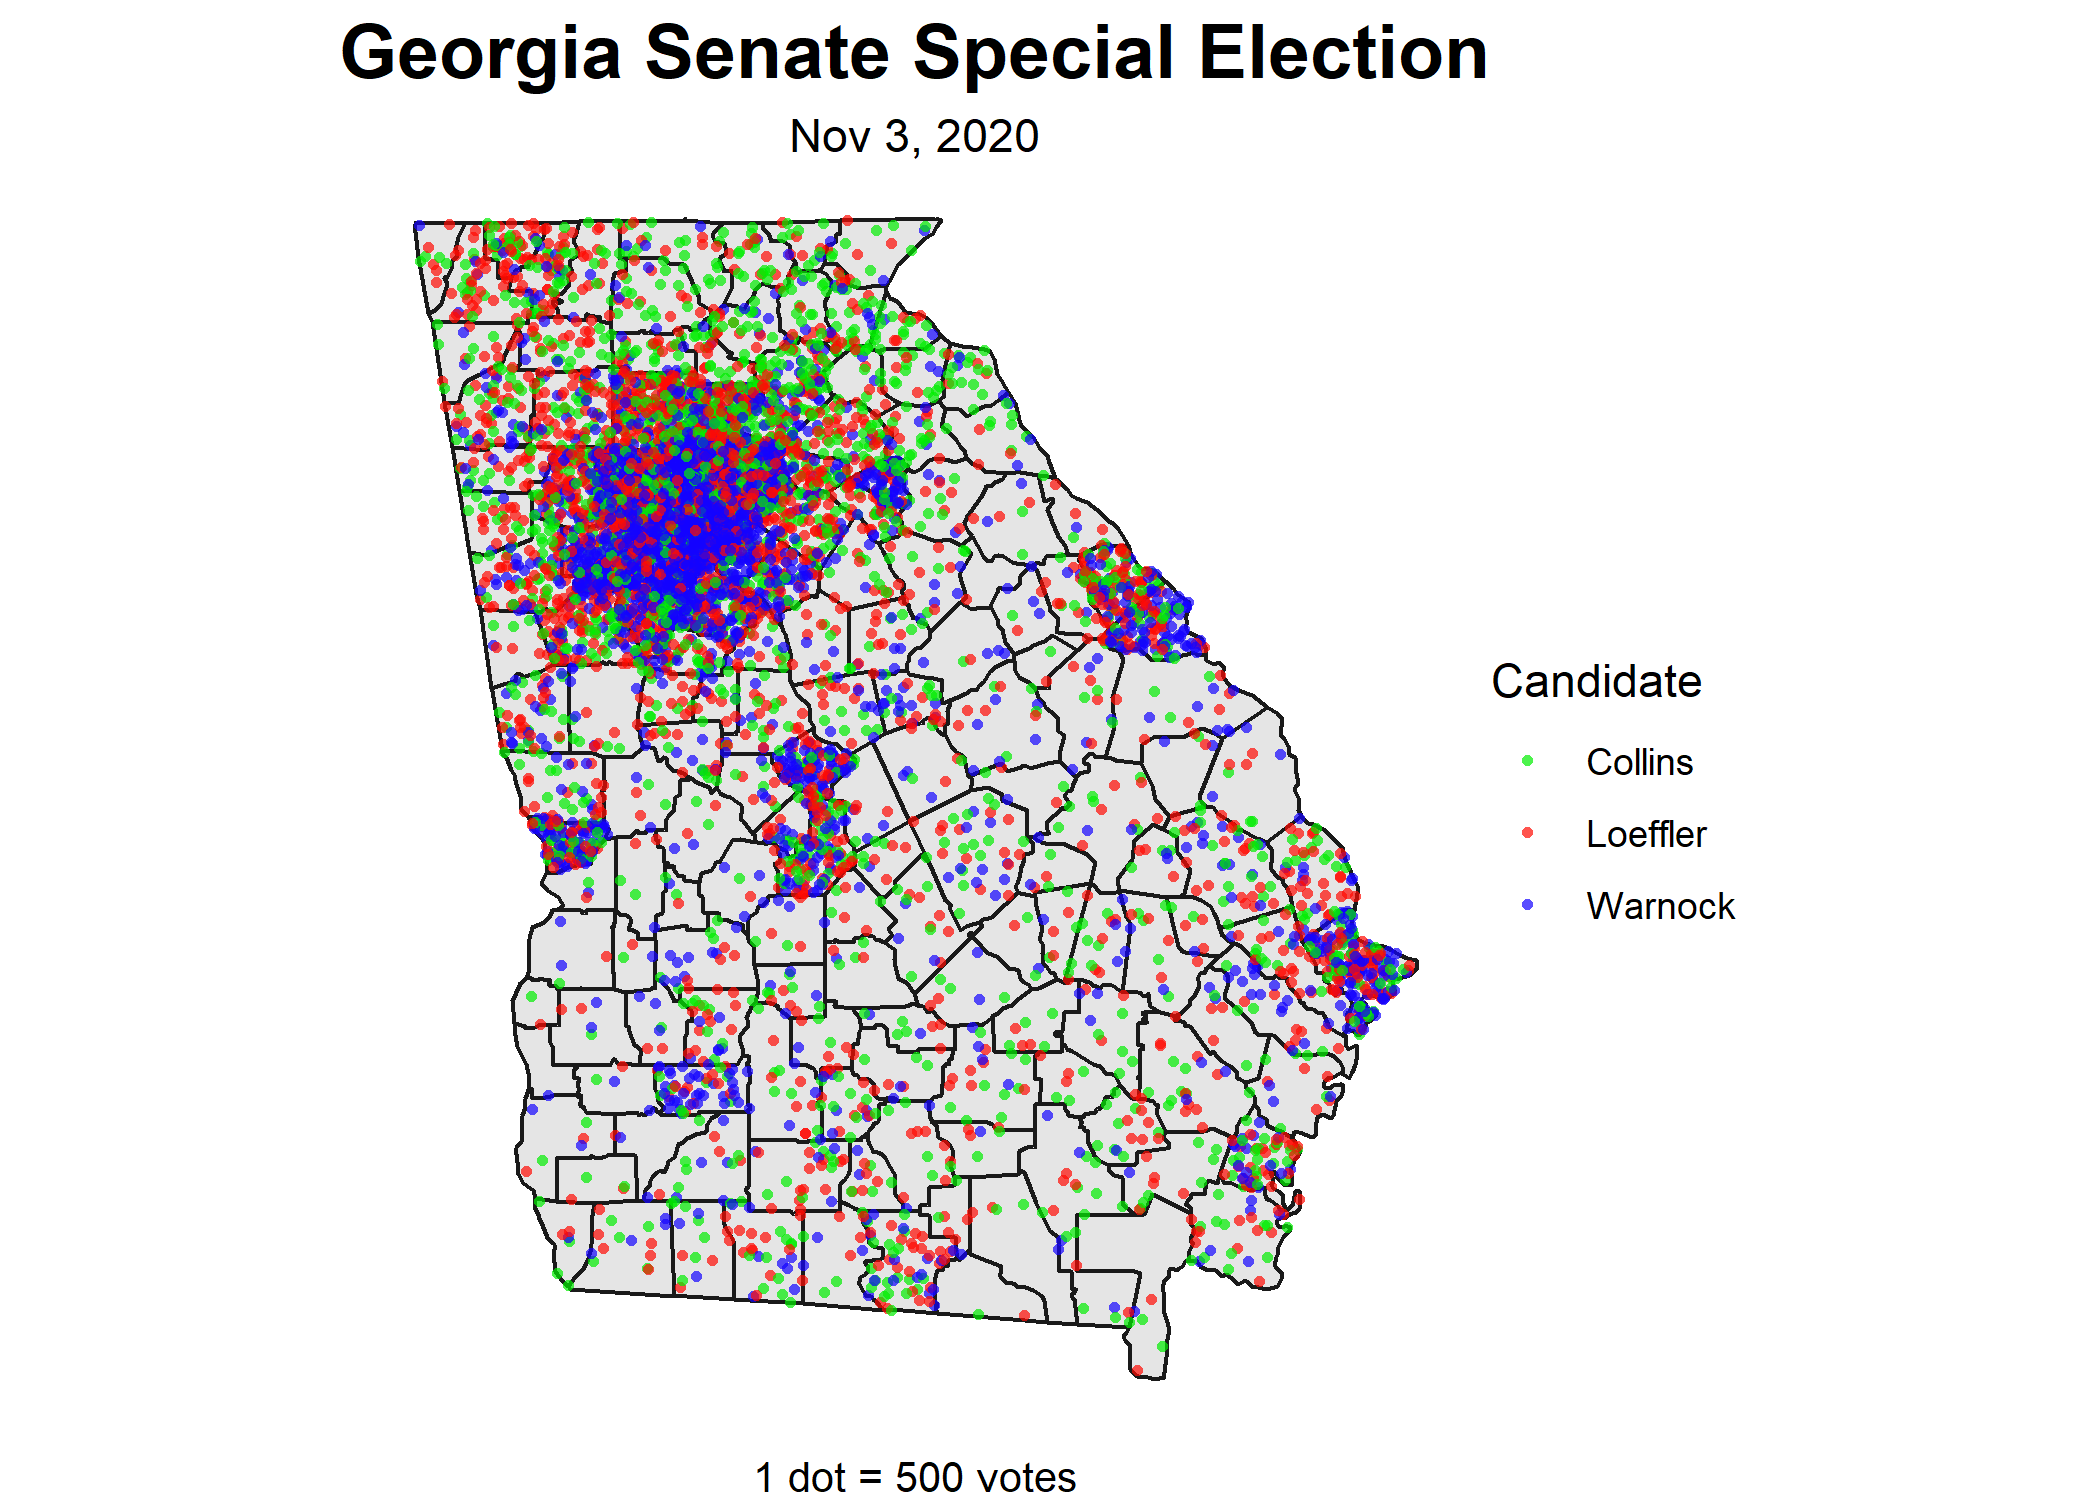 Warnock, Loeffler, and Collins Votes in the Georgia Senate Special Election. 1 dot equals 500 votes.